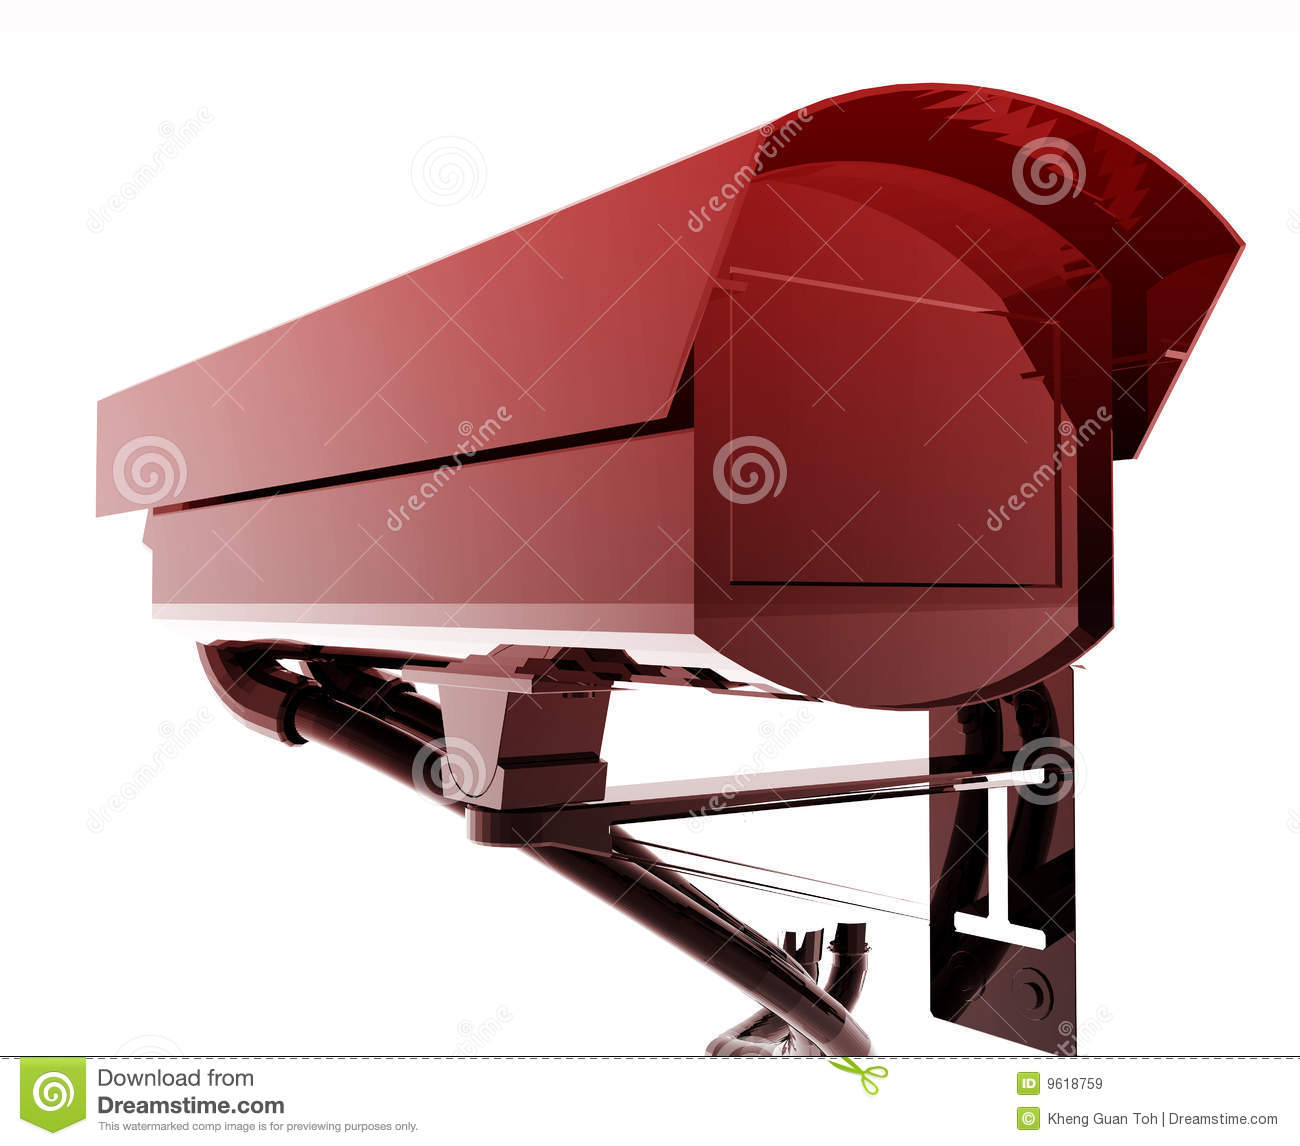 Security Camera Illustration Royalty Free Stock Images